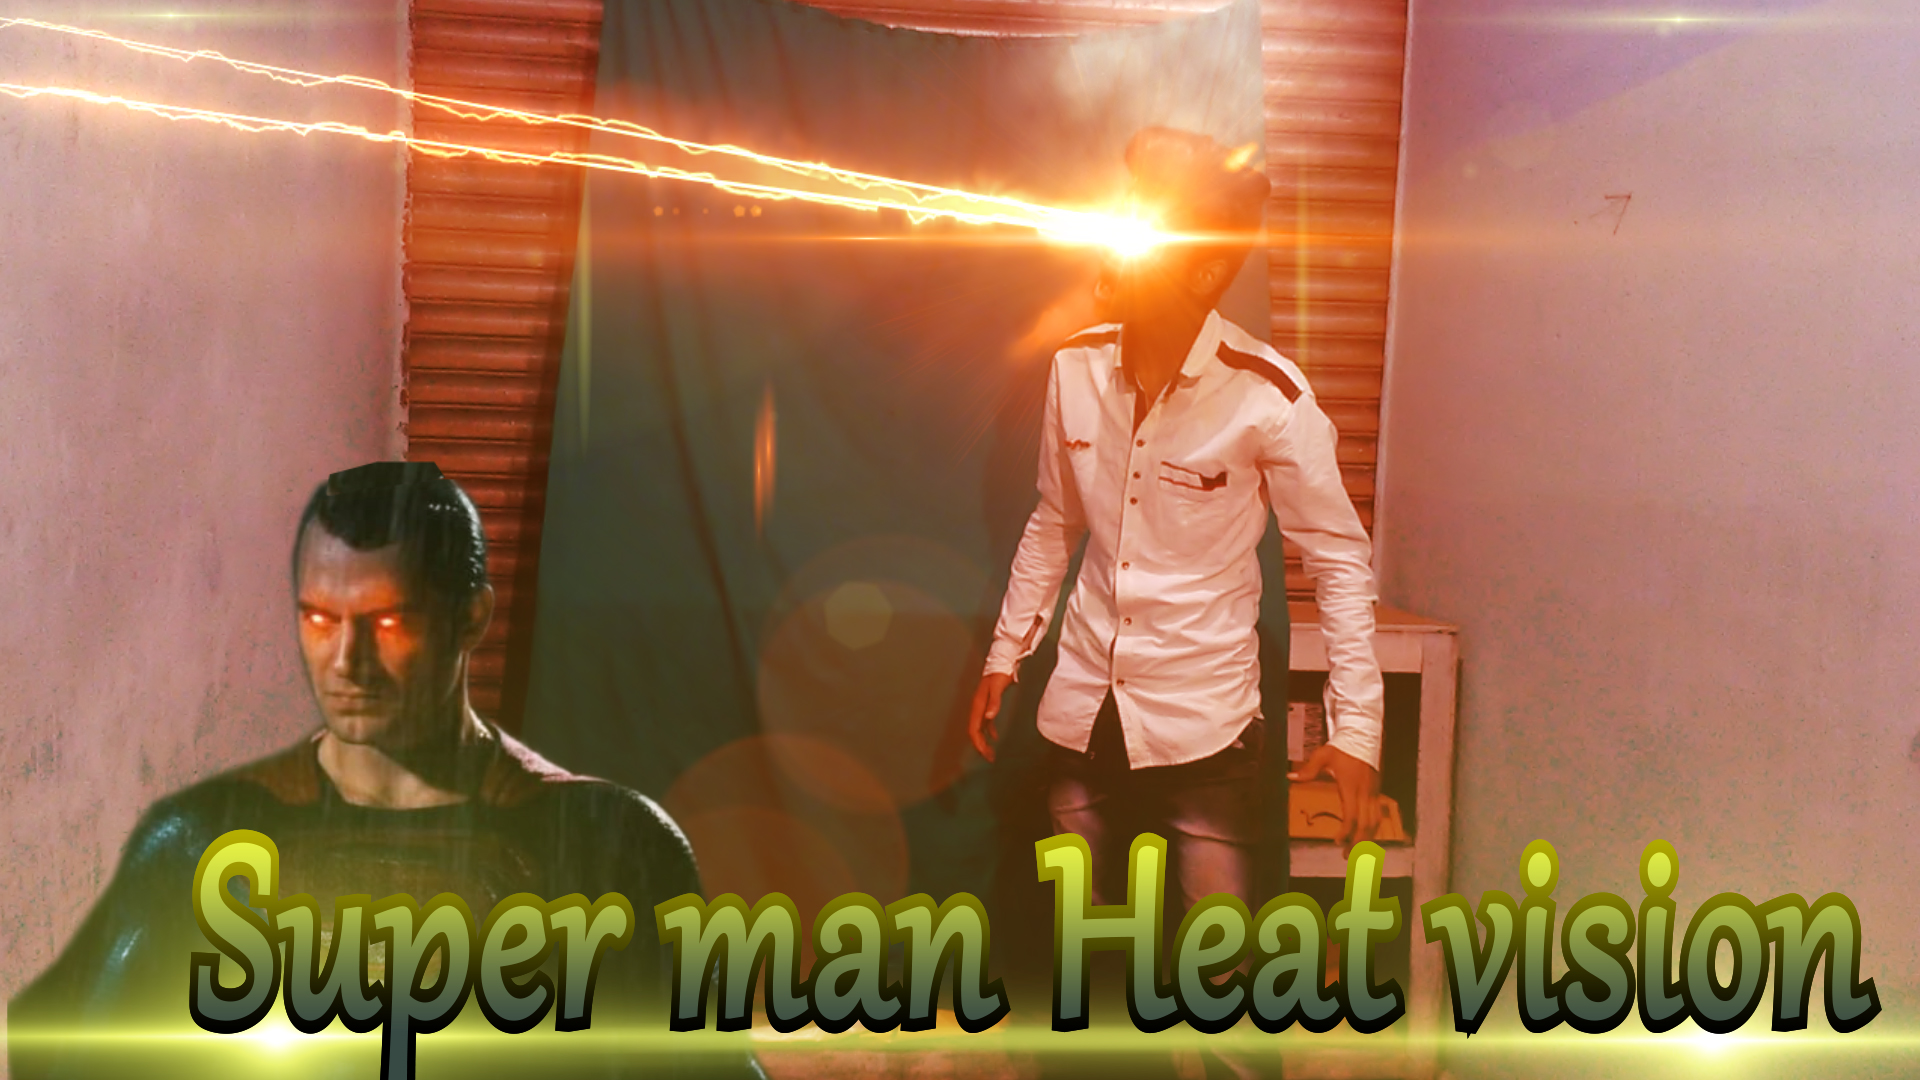 will make you Superman heat vision in your record video